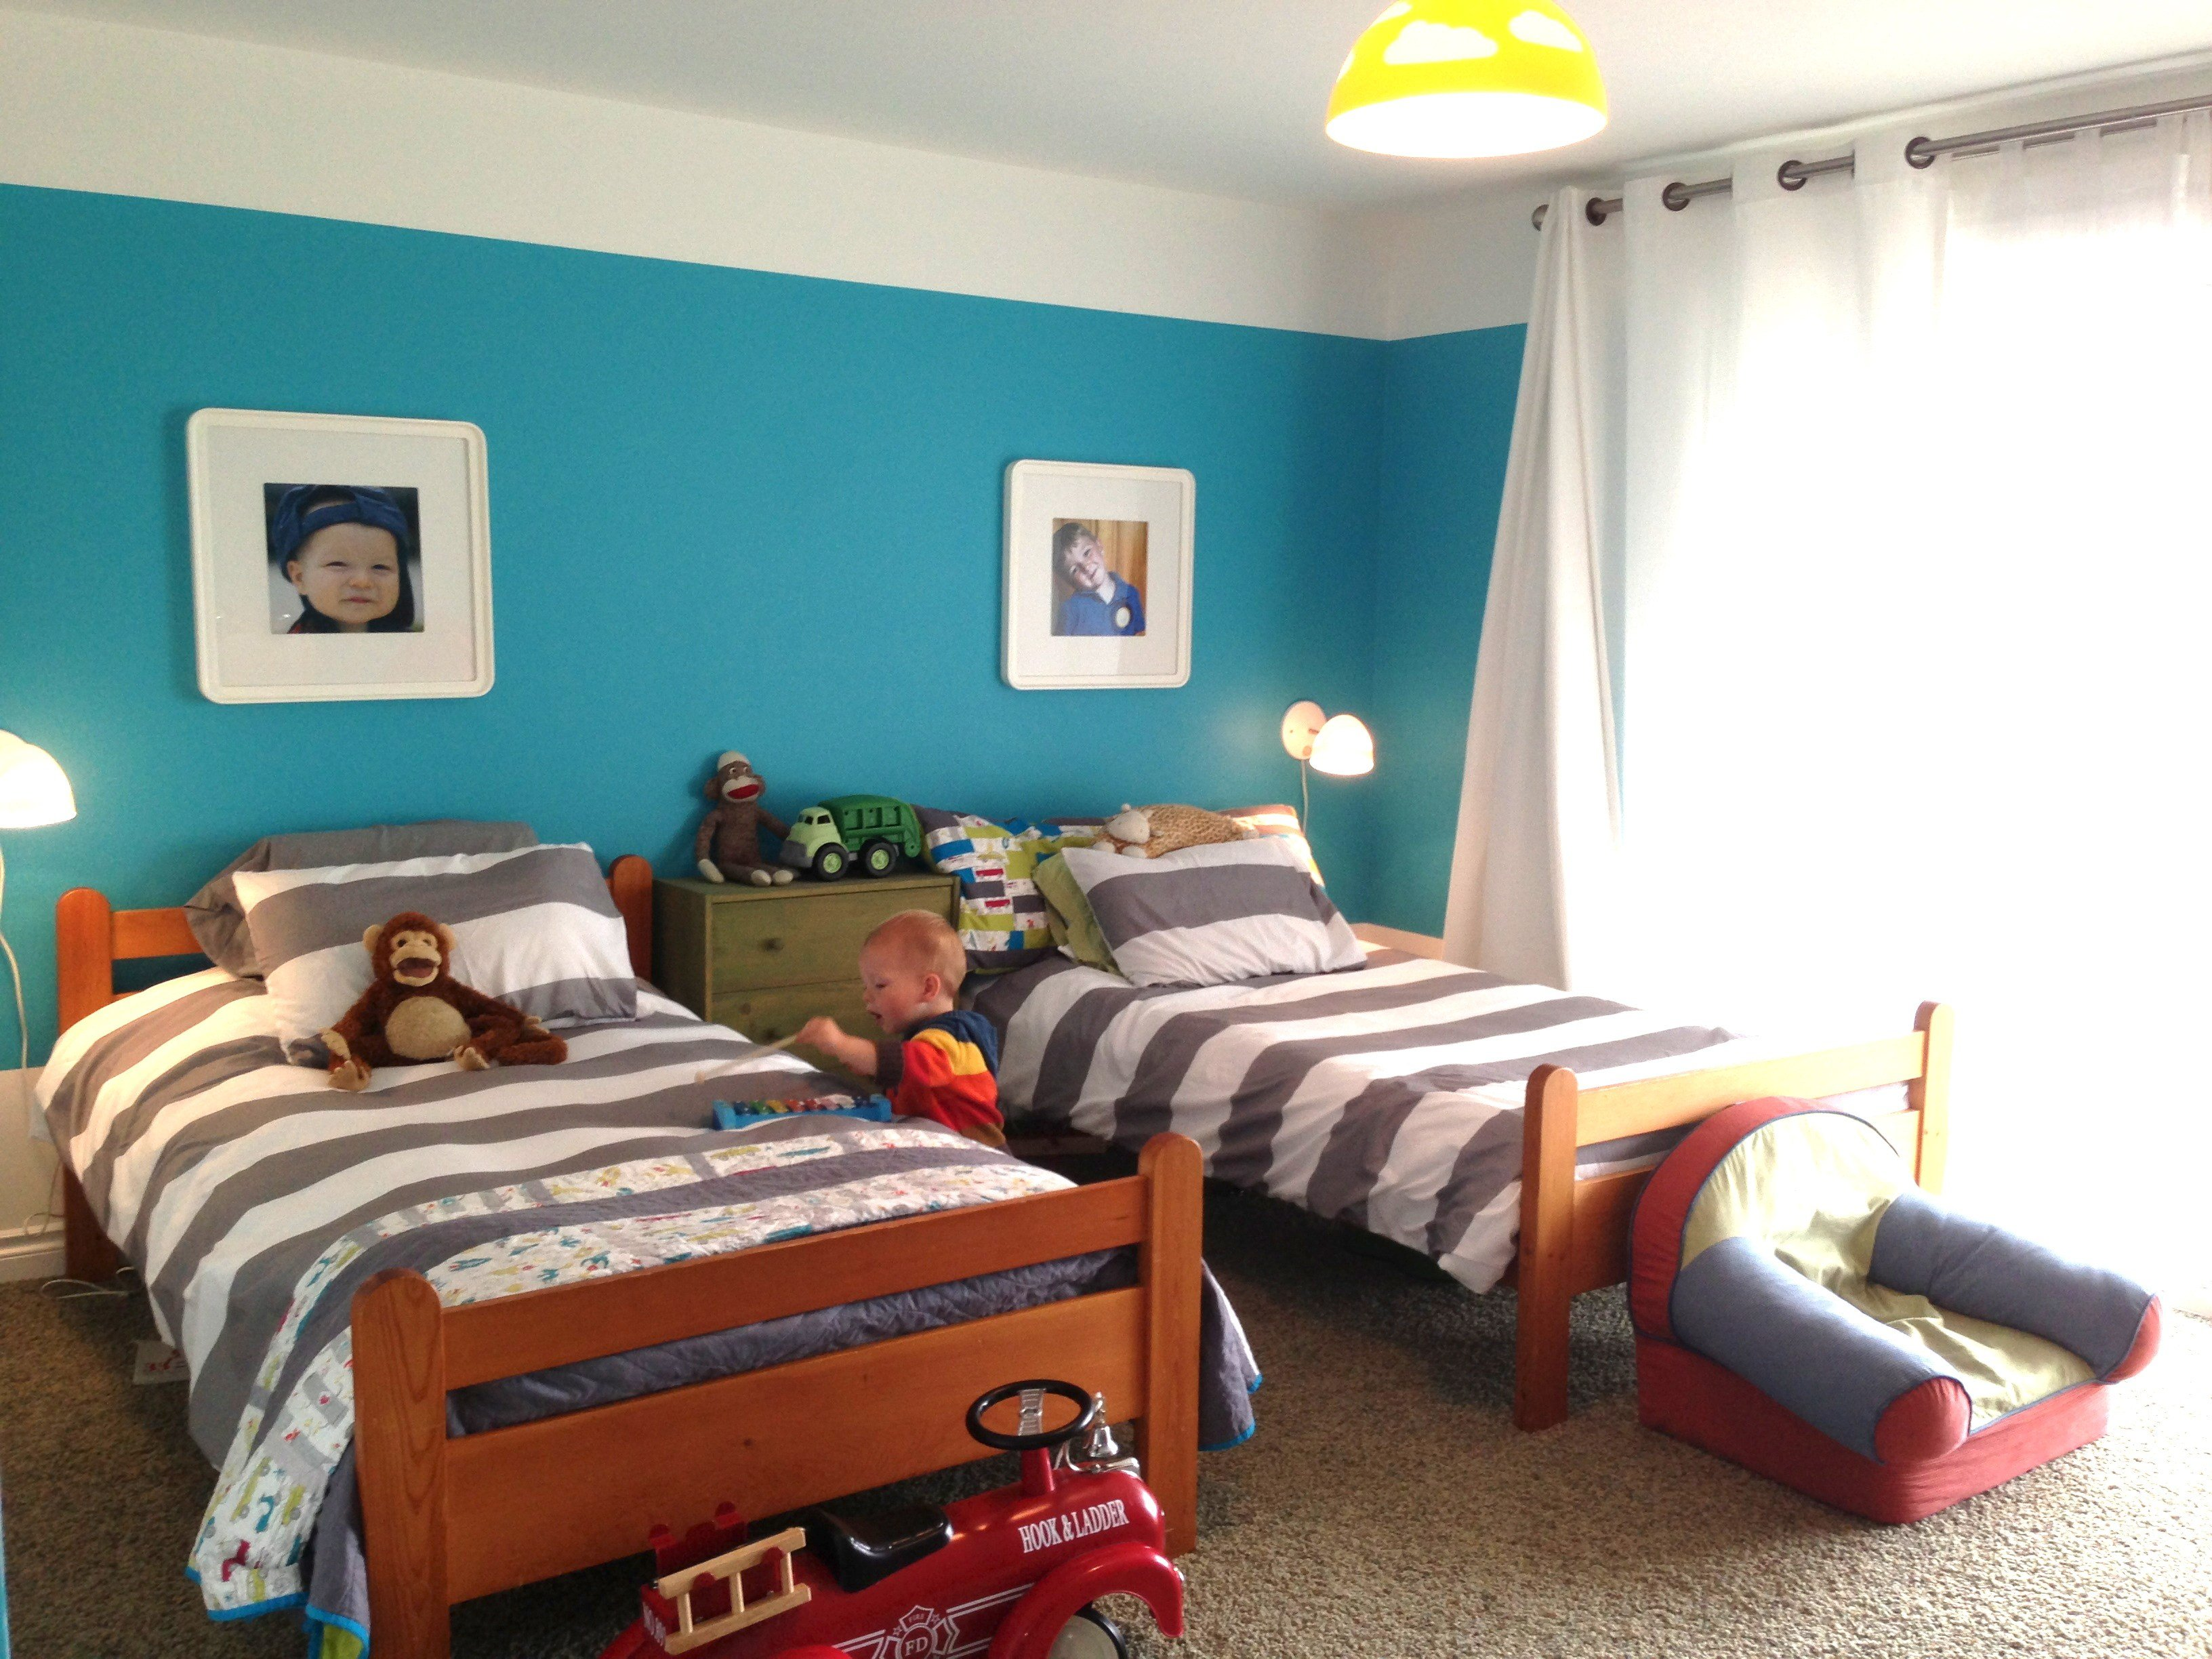 Best Pins 66 74 2 Boys In A Room The Pinterest Effect With Pictures